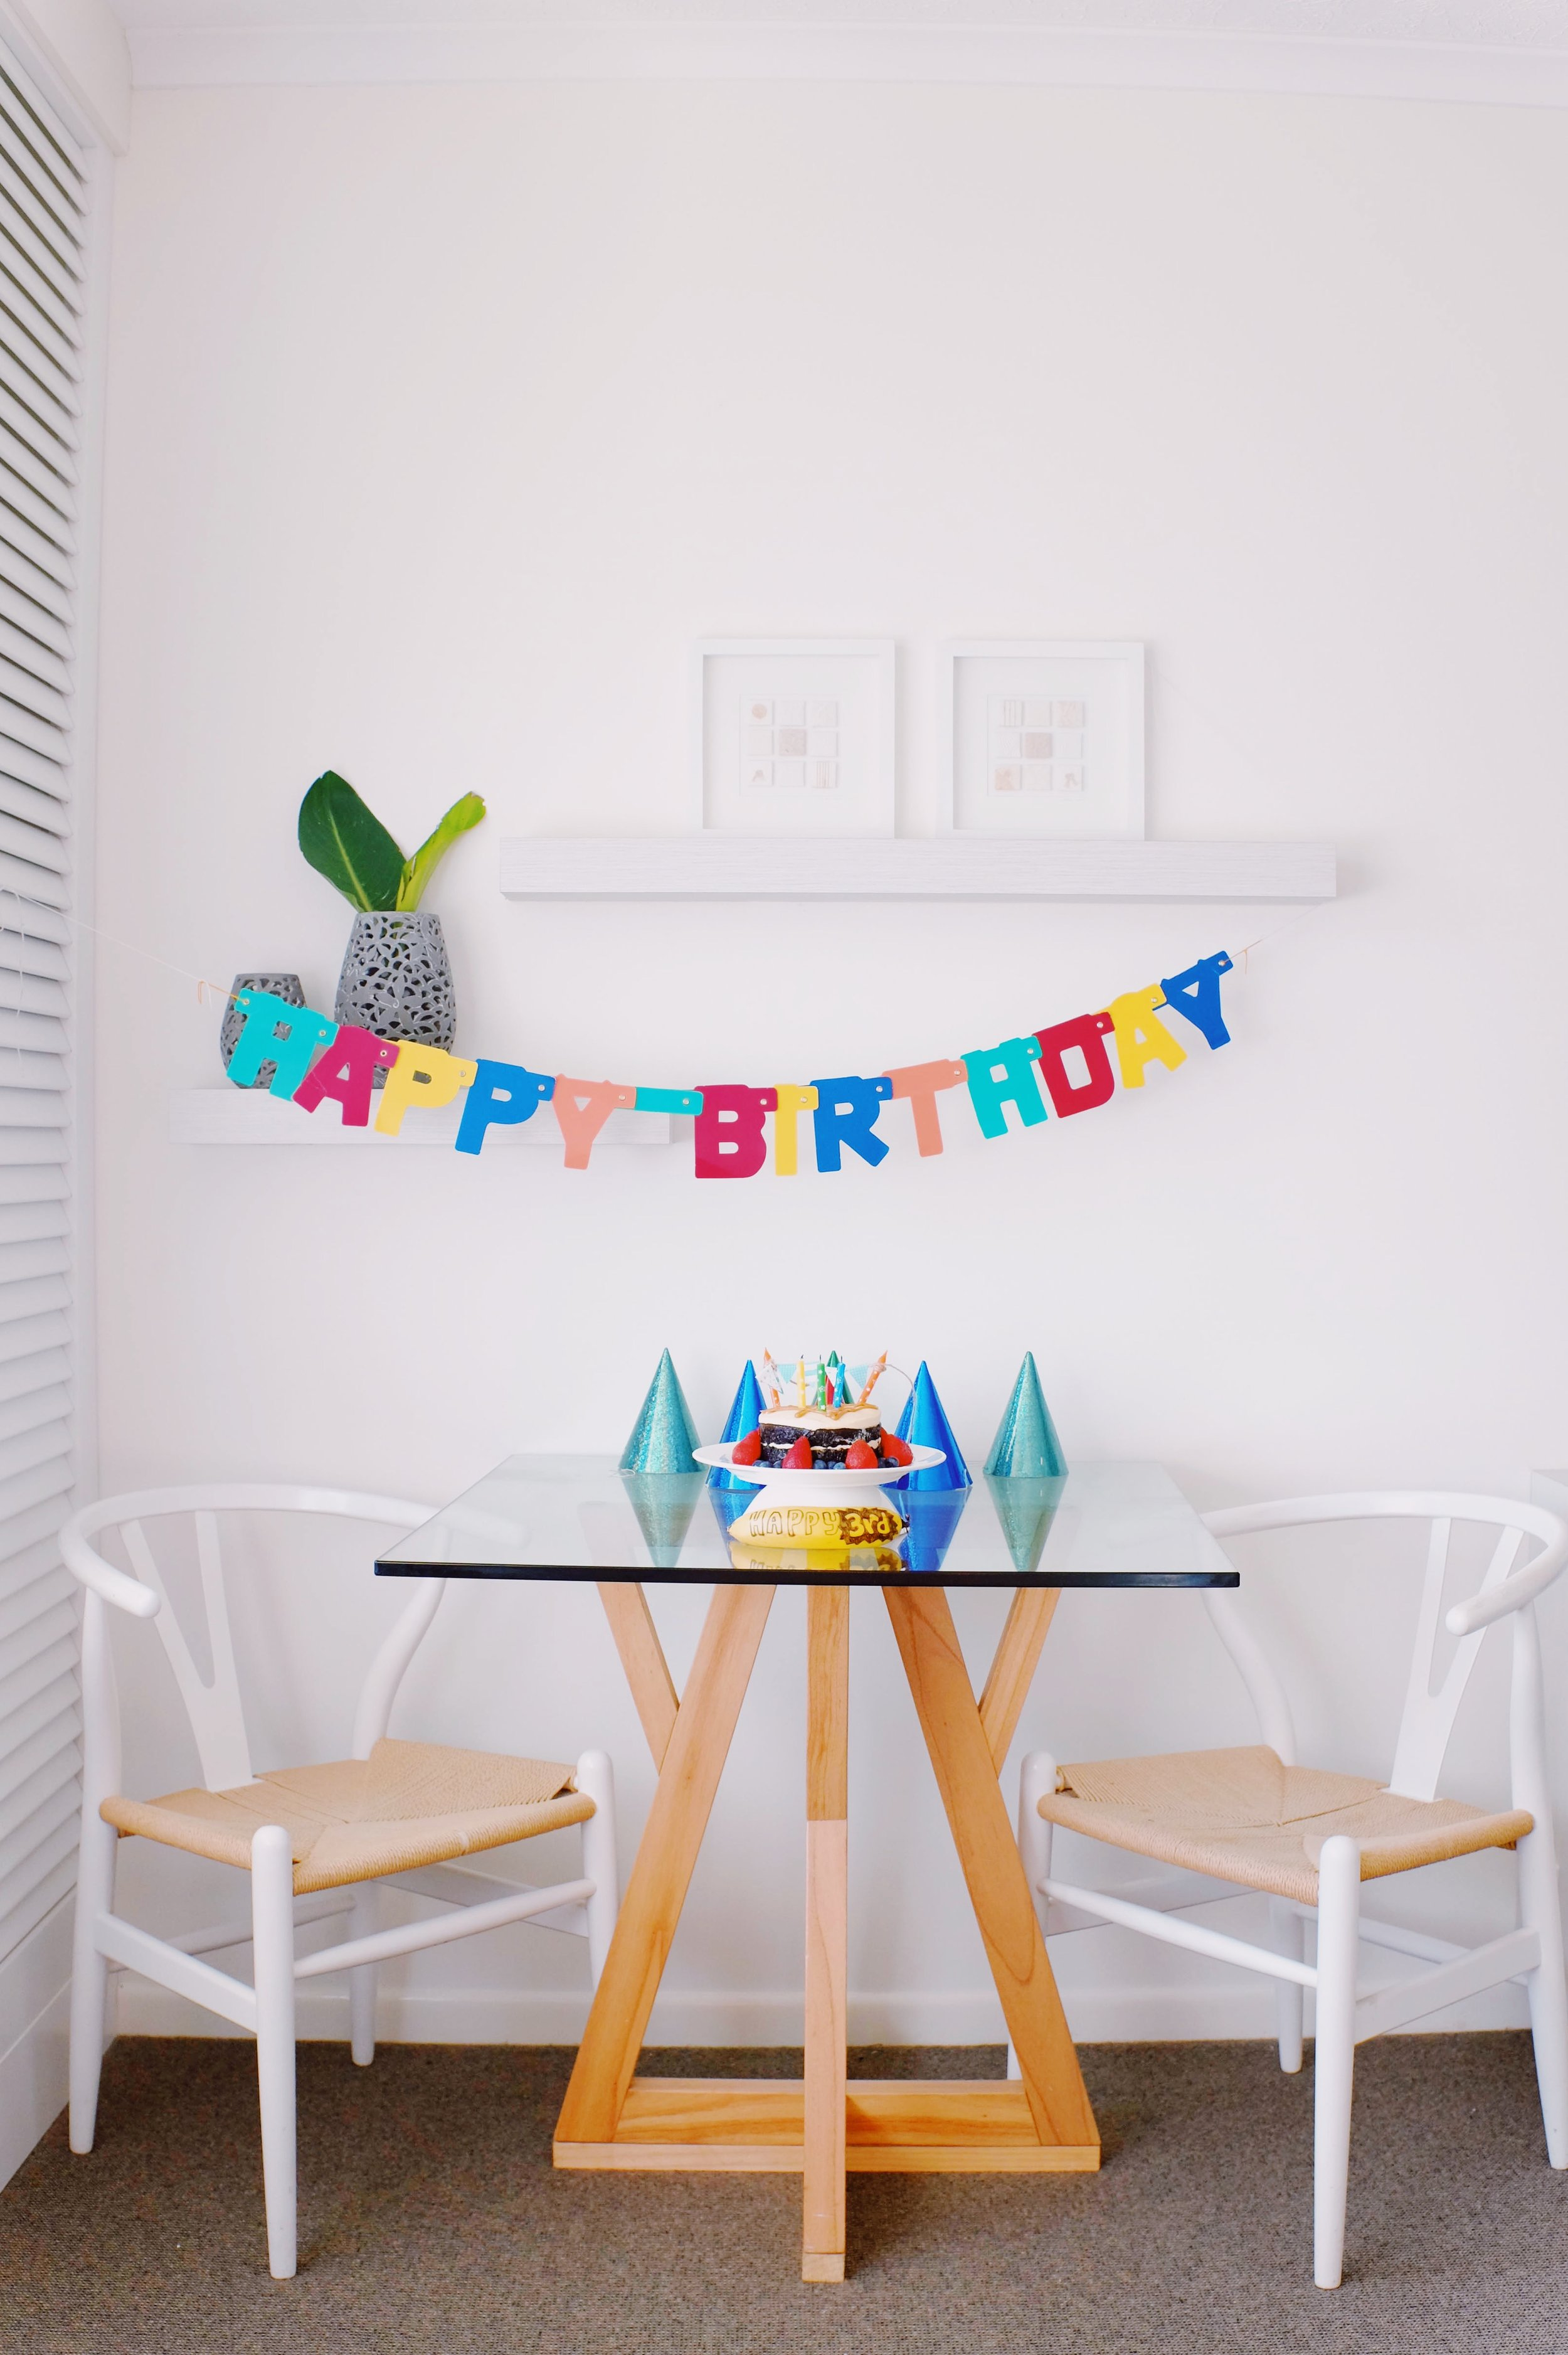 Birthday decorations against a white background